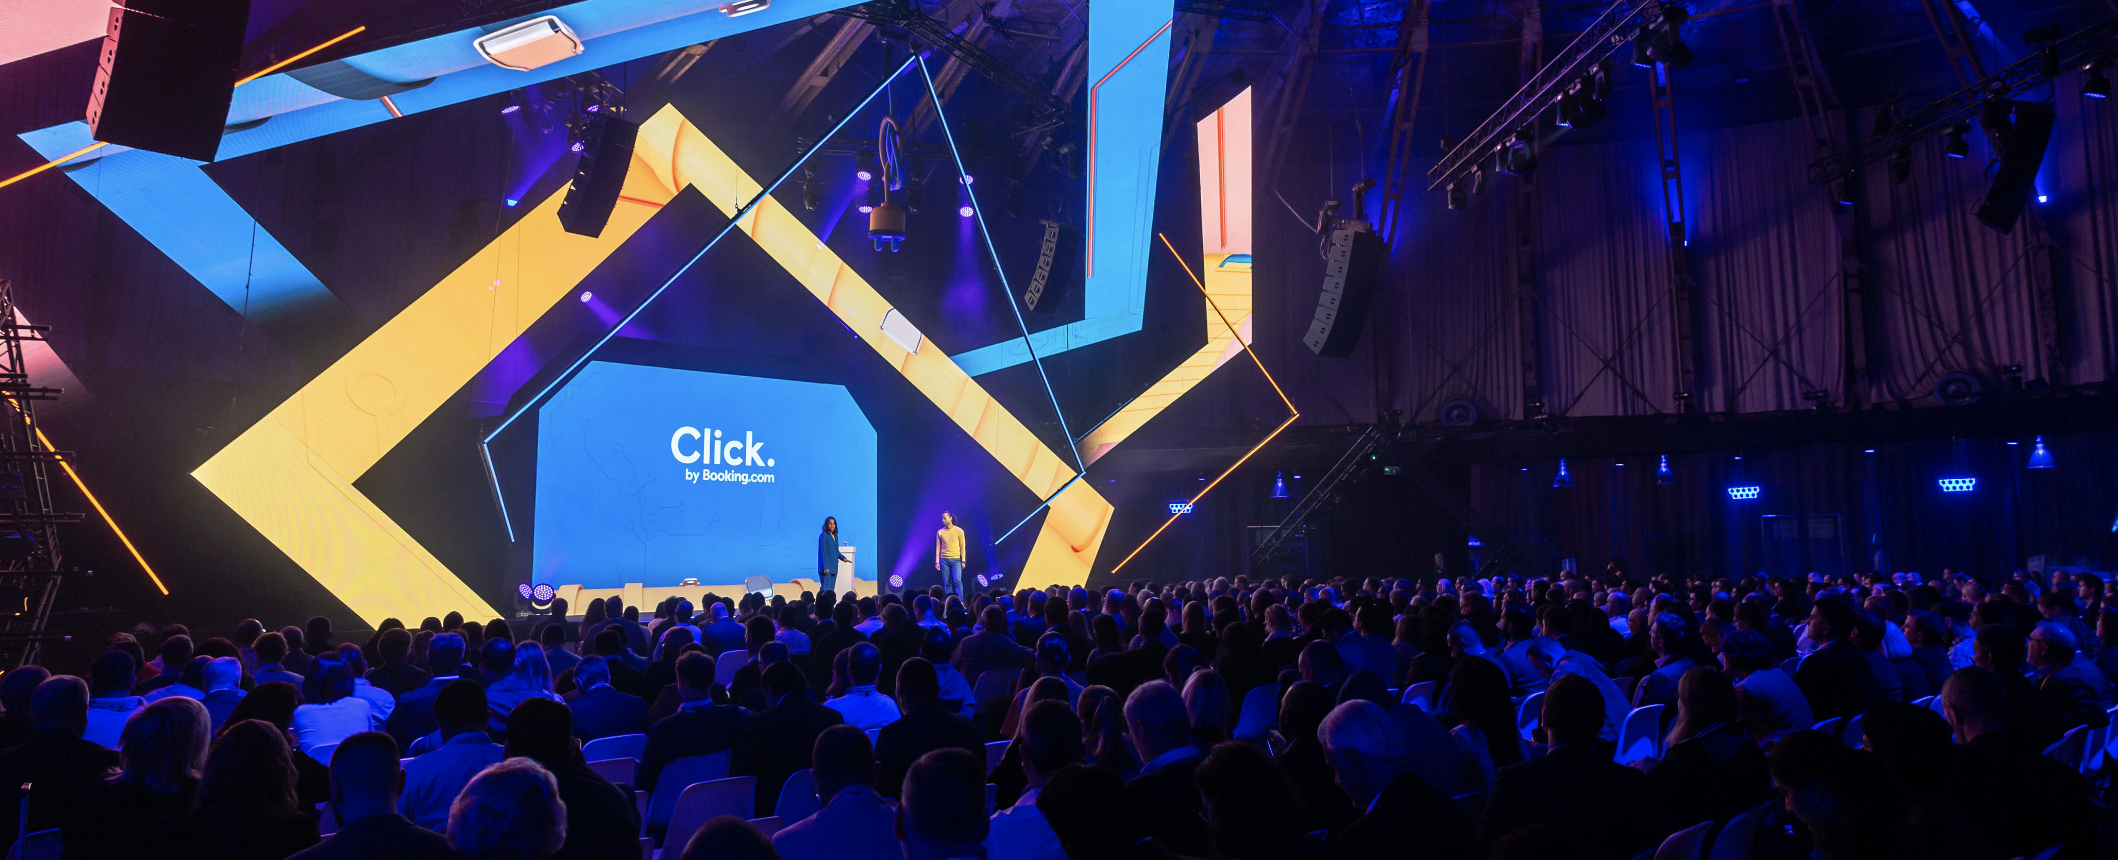 Main Stage, Click 2019 event, Amsterdam